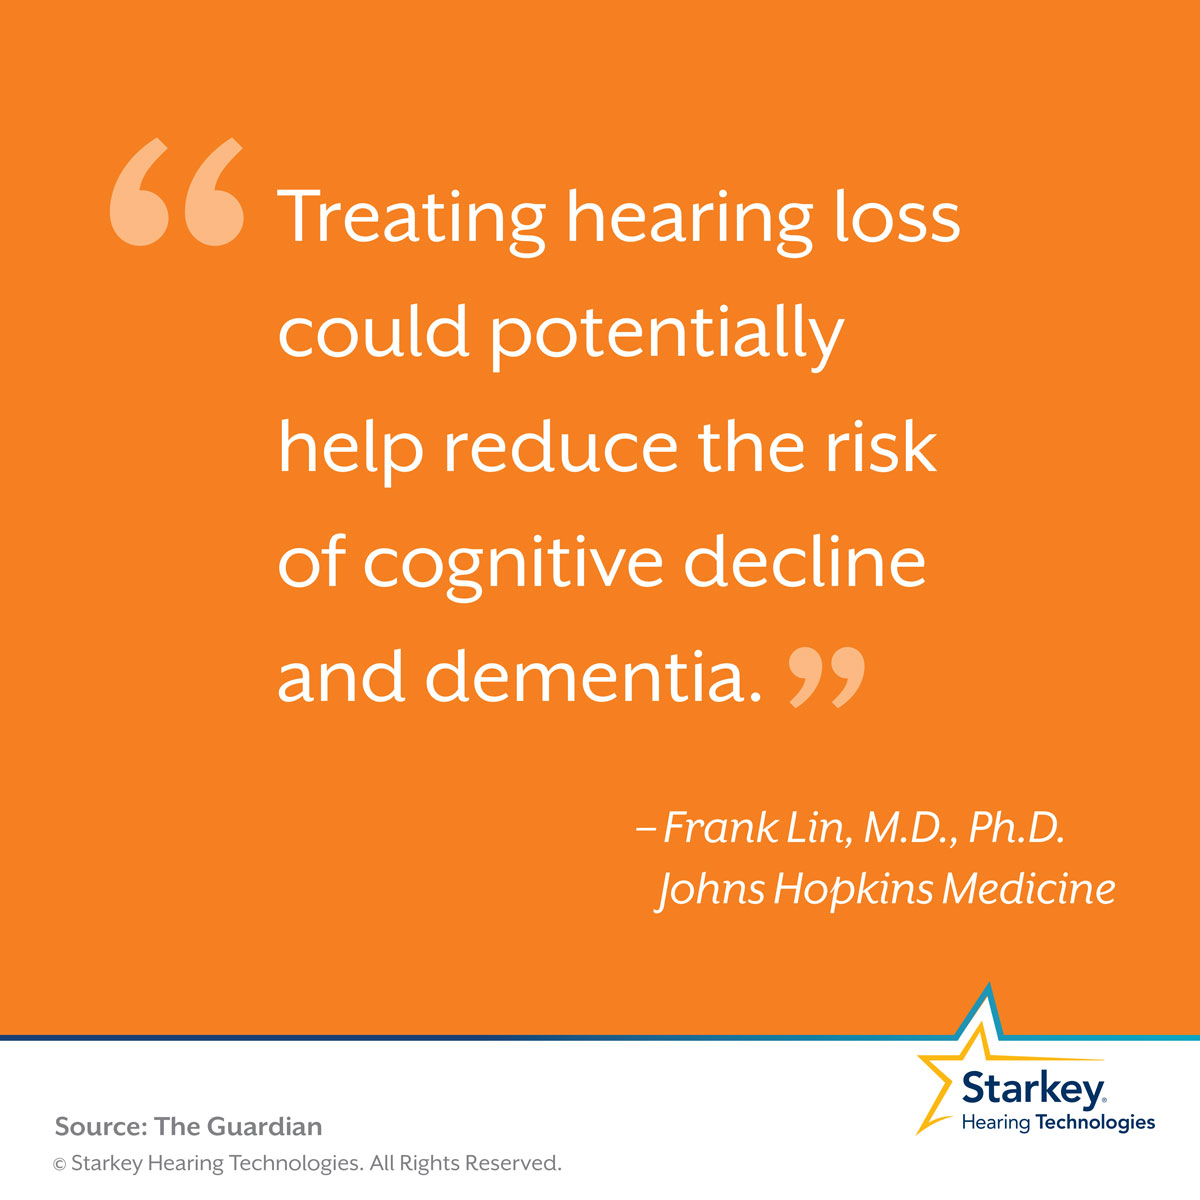 There are major mental health and cognitive benefits to treating hearing loss.